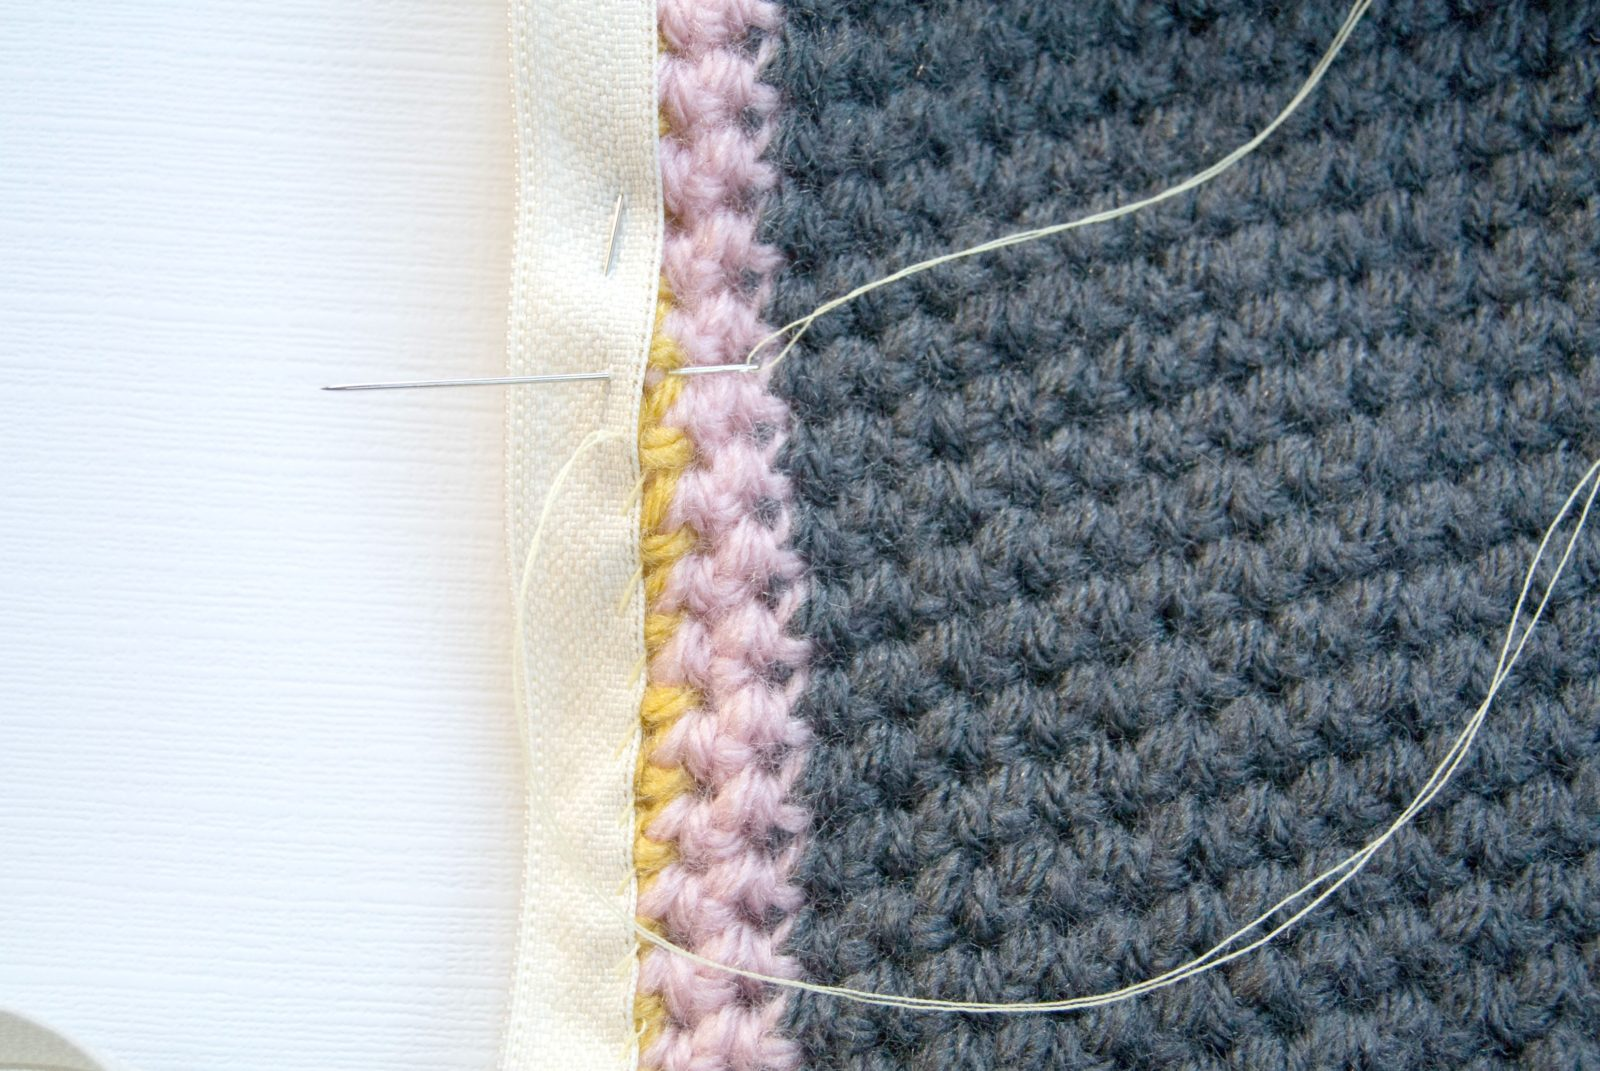 Crochet Whip Stitch : attaching the zipper with a whip stitch, which worked for me. I ...